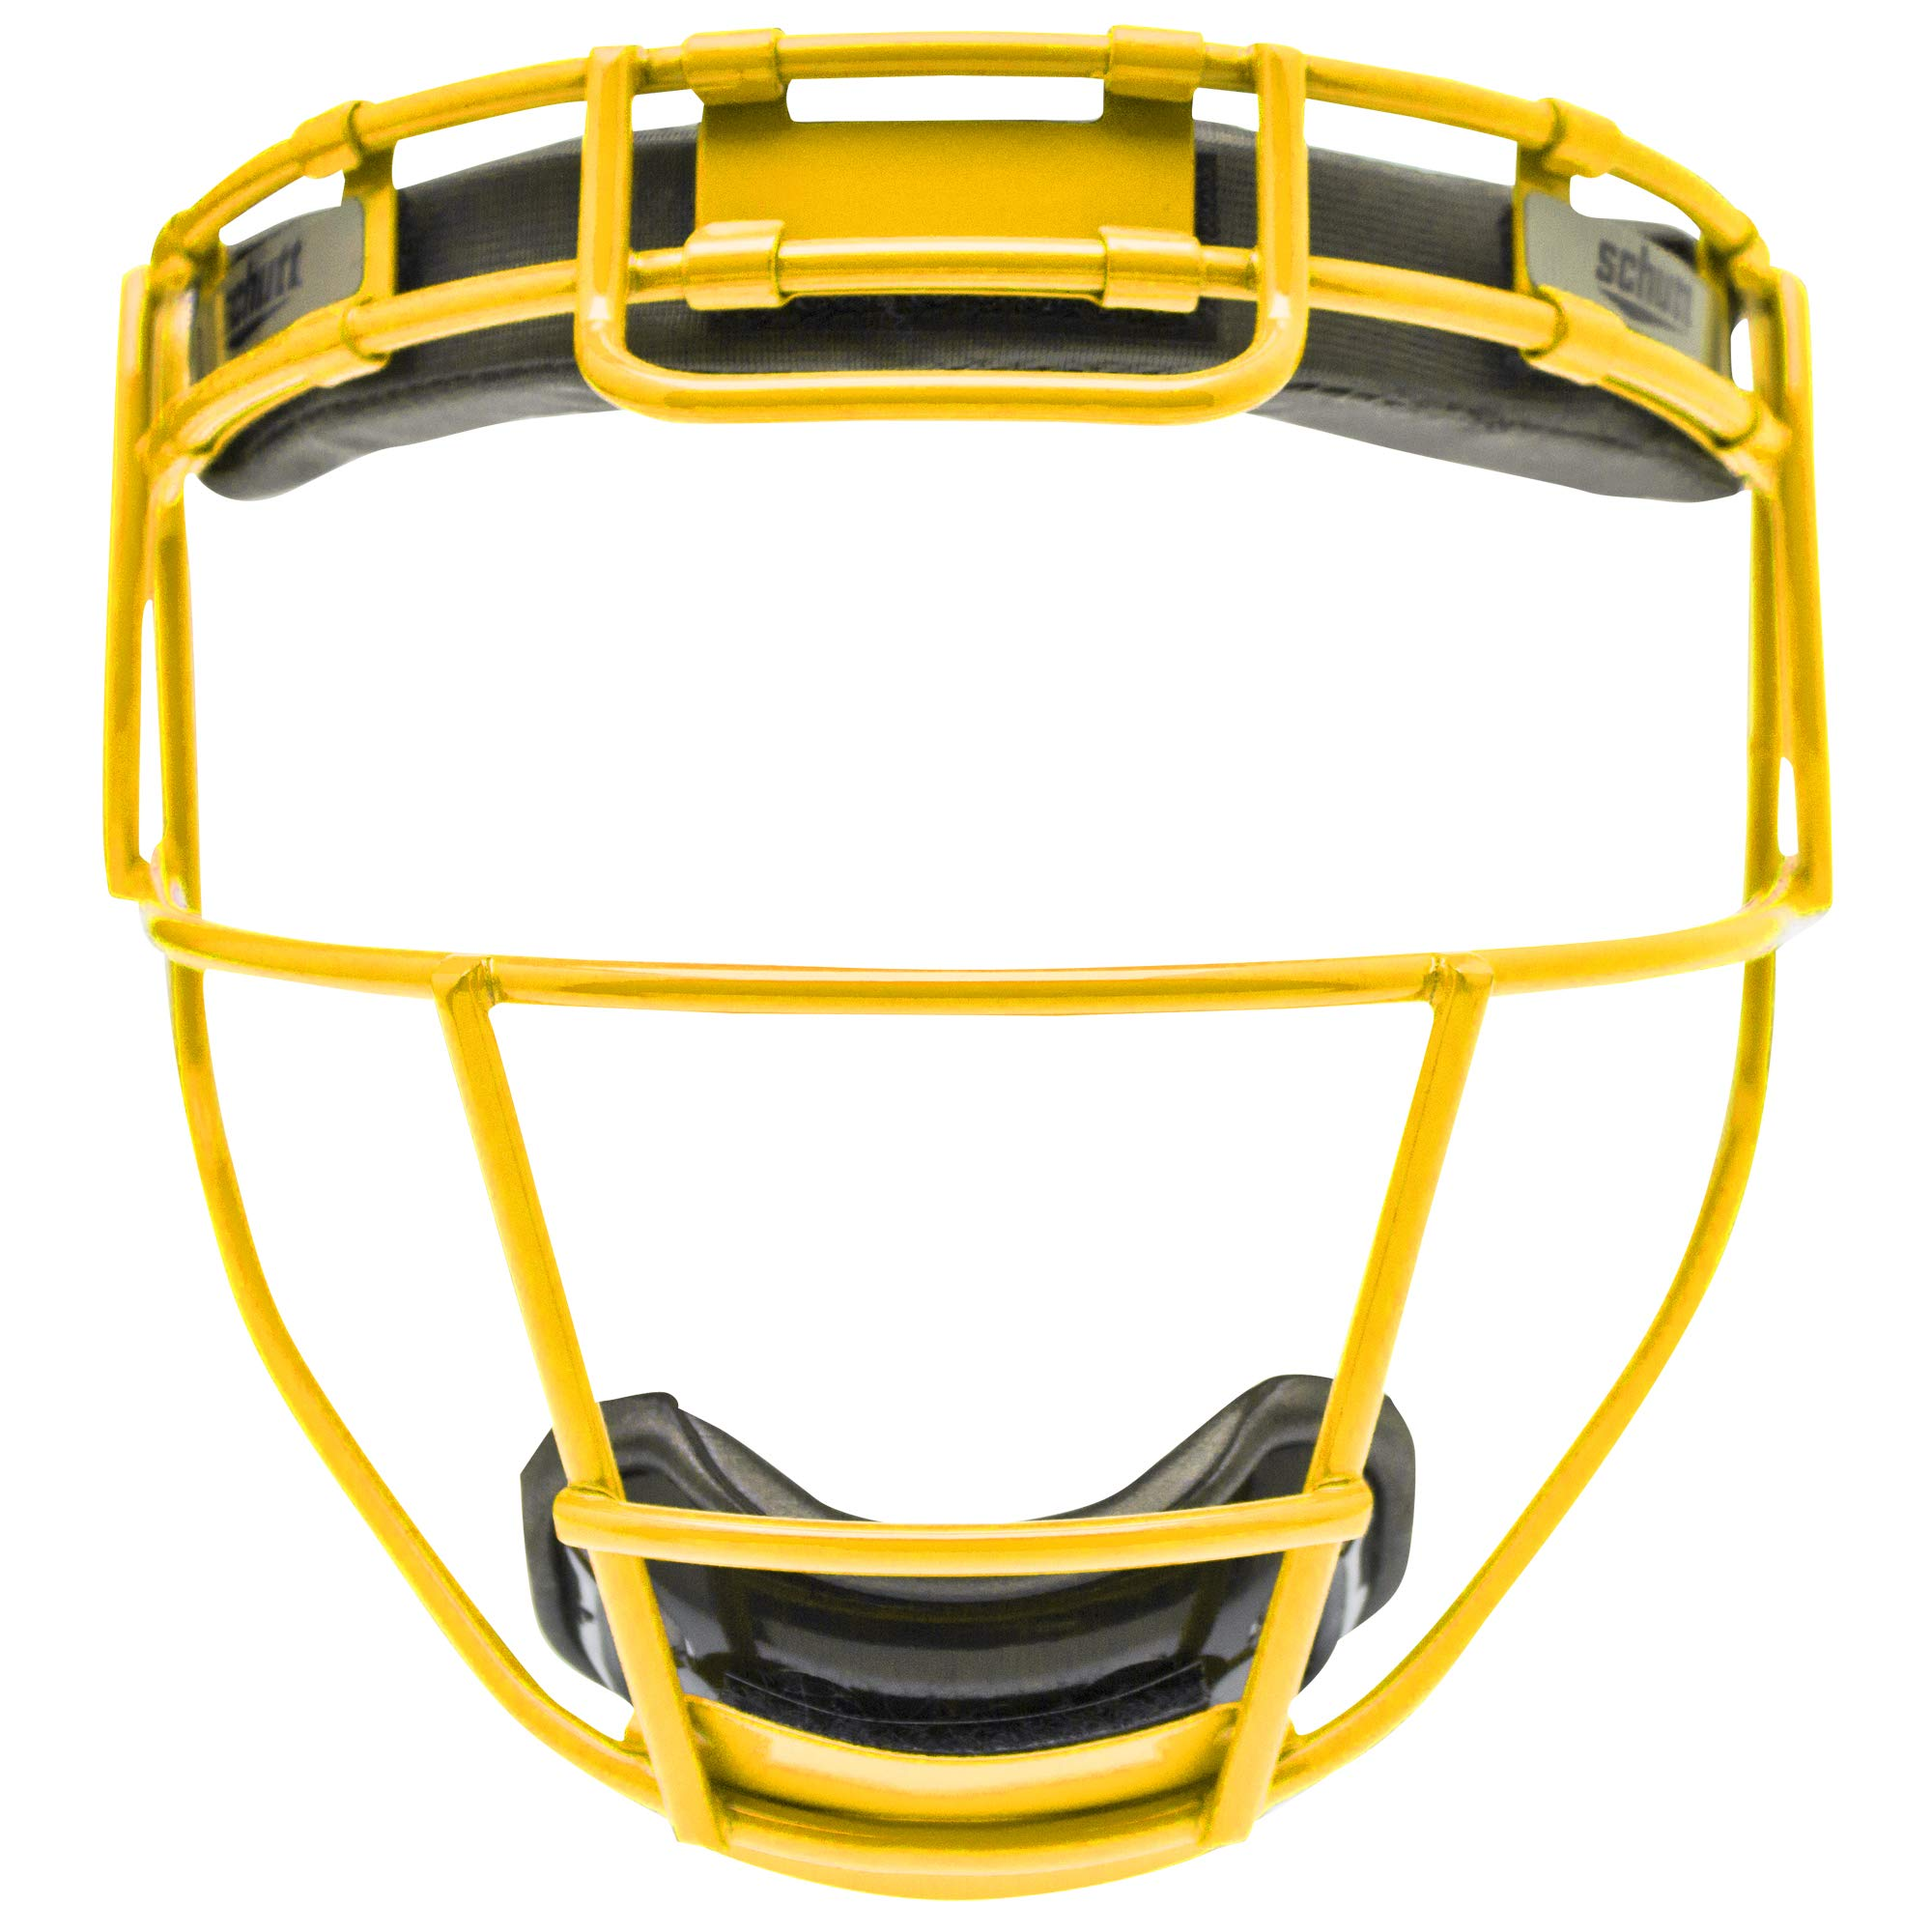 Schutt Sports Softball Fielders Guard, Adult, Gold by Schutt